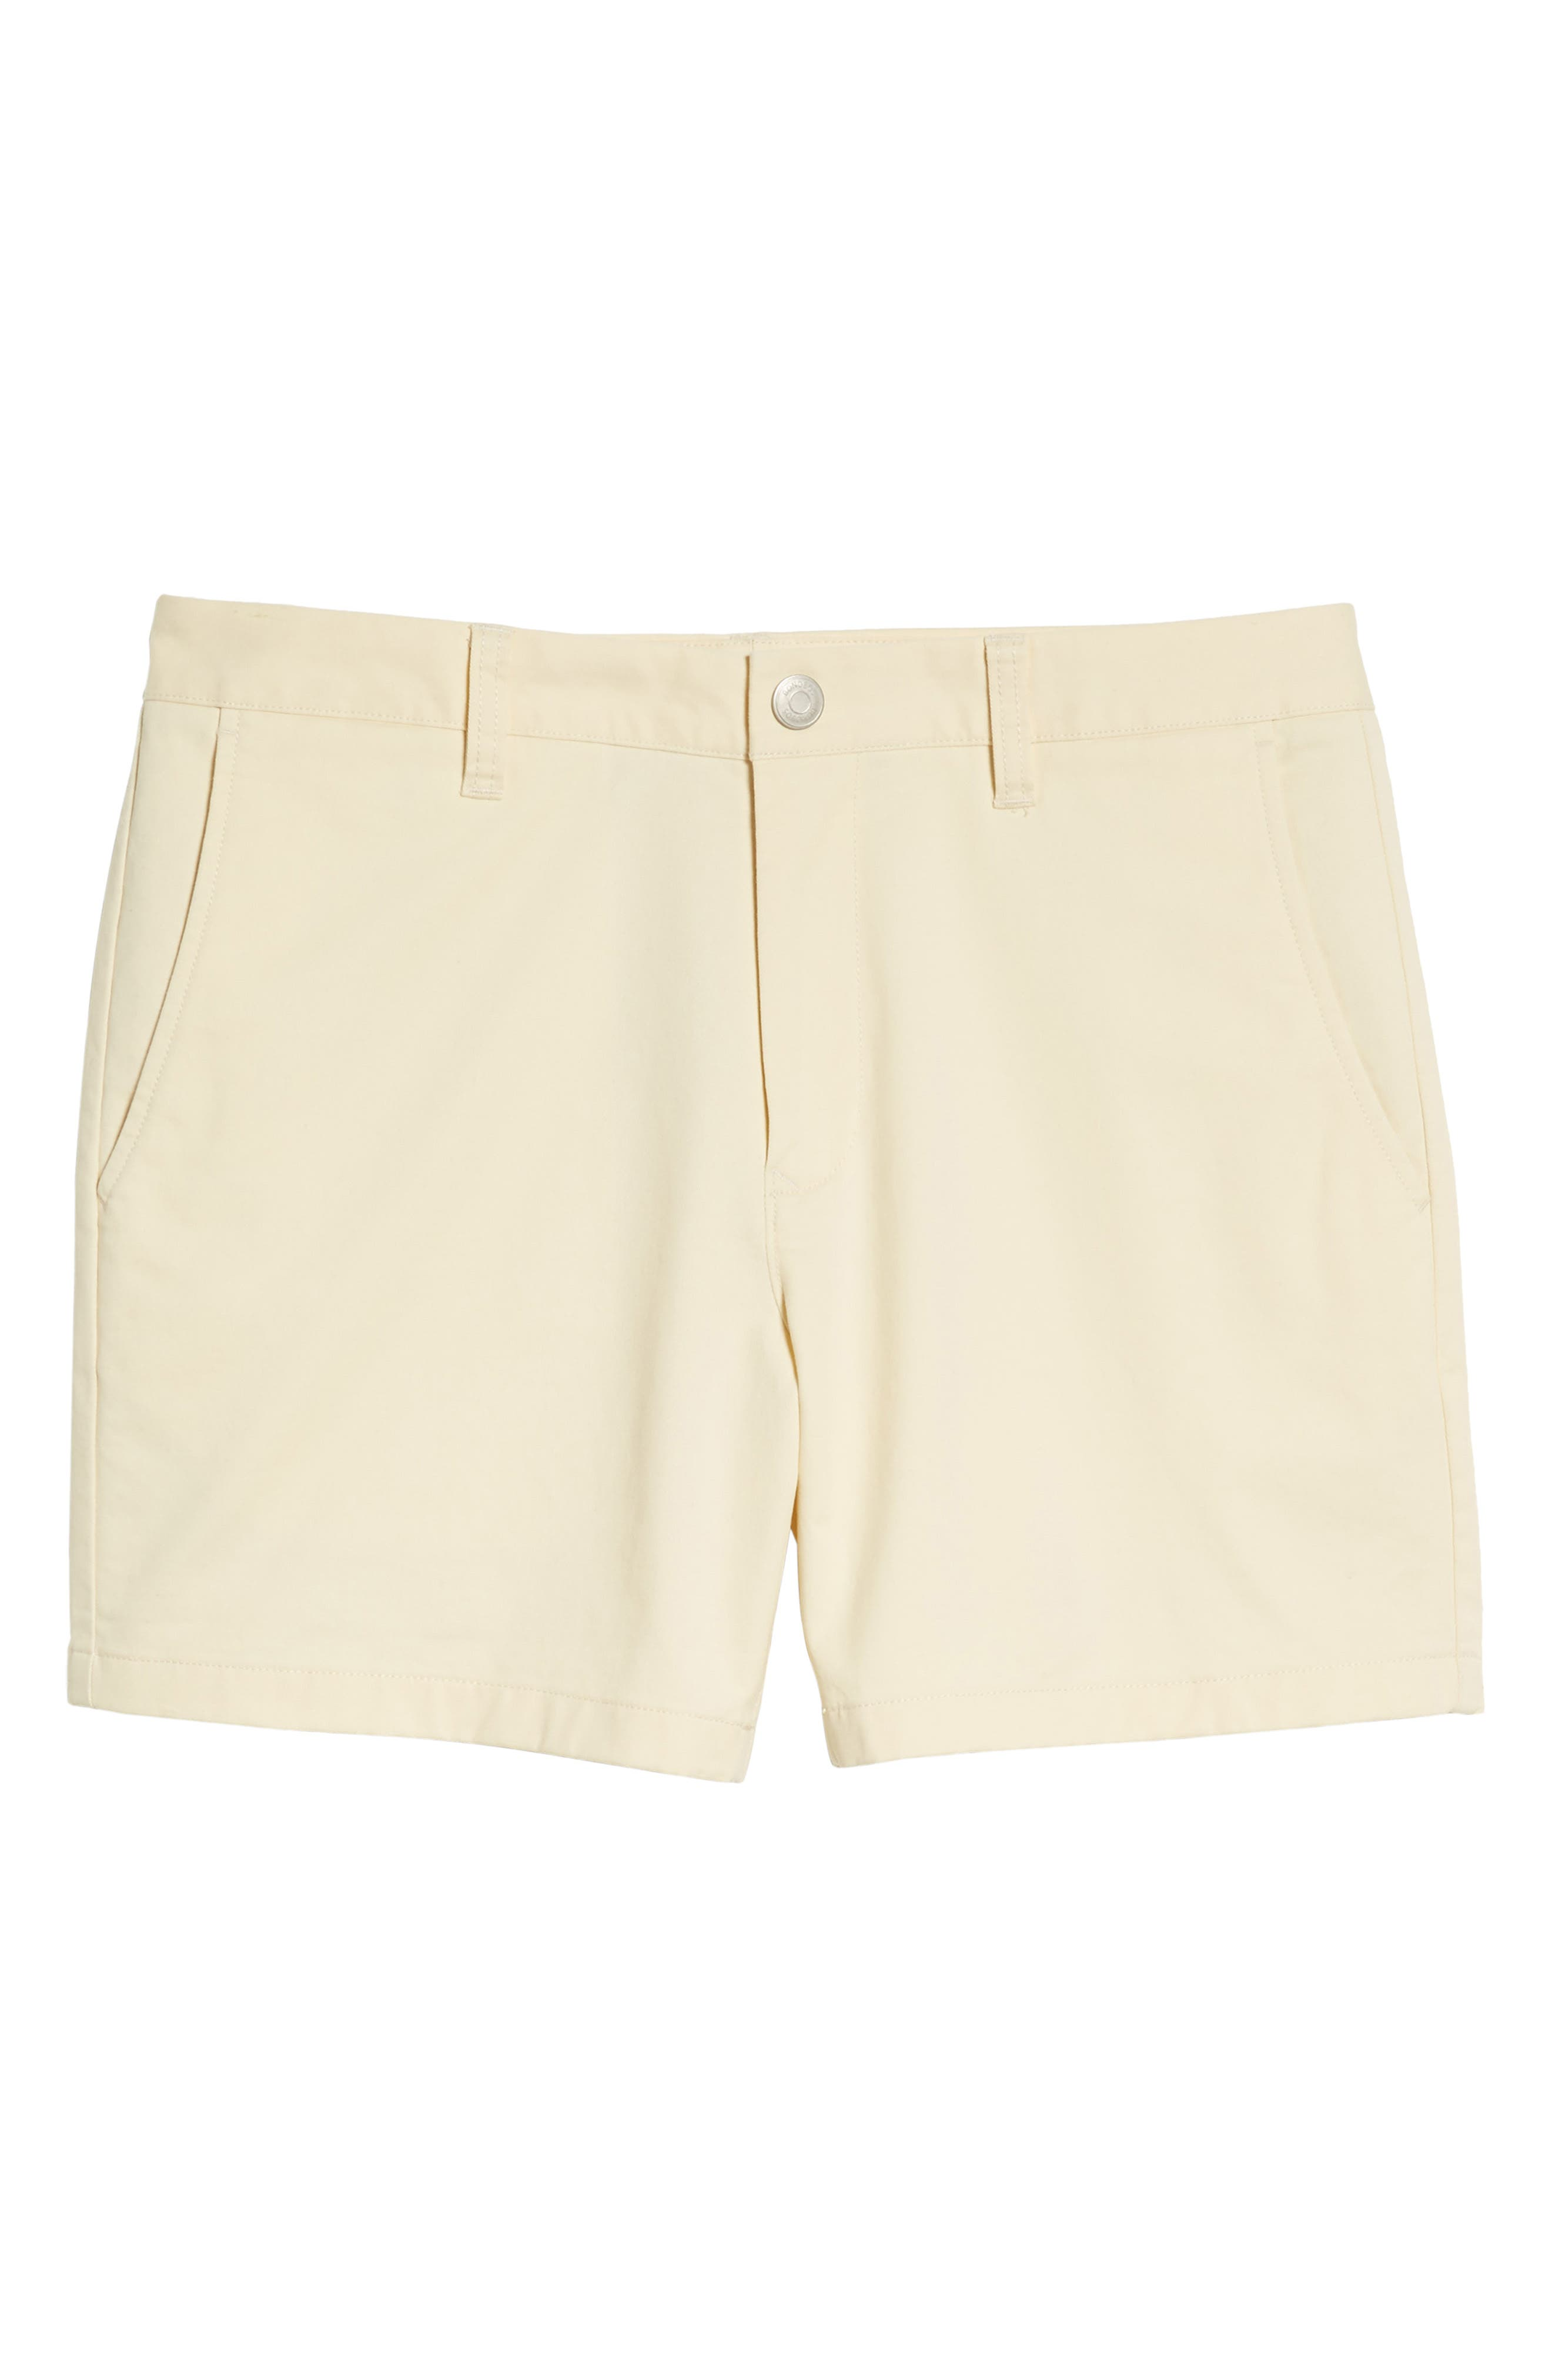 Stretch Washed Chino 5-Inch Shorts,                             Alternate thumbnail 158, color,